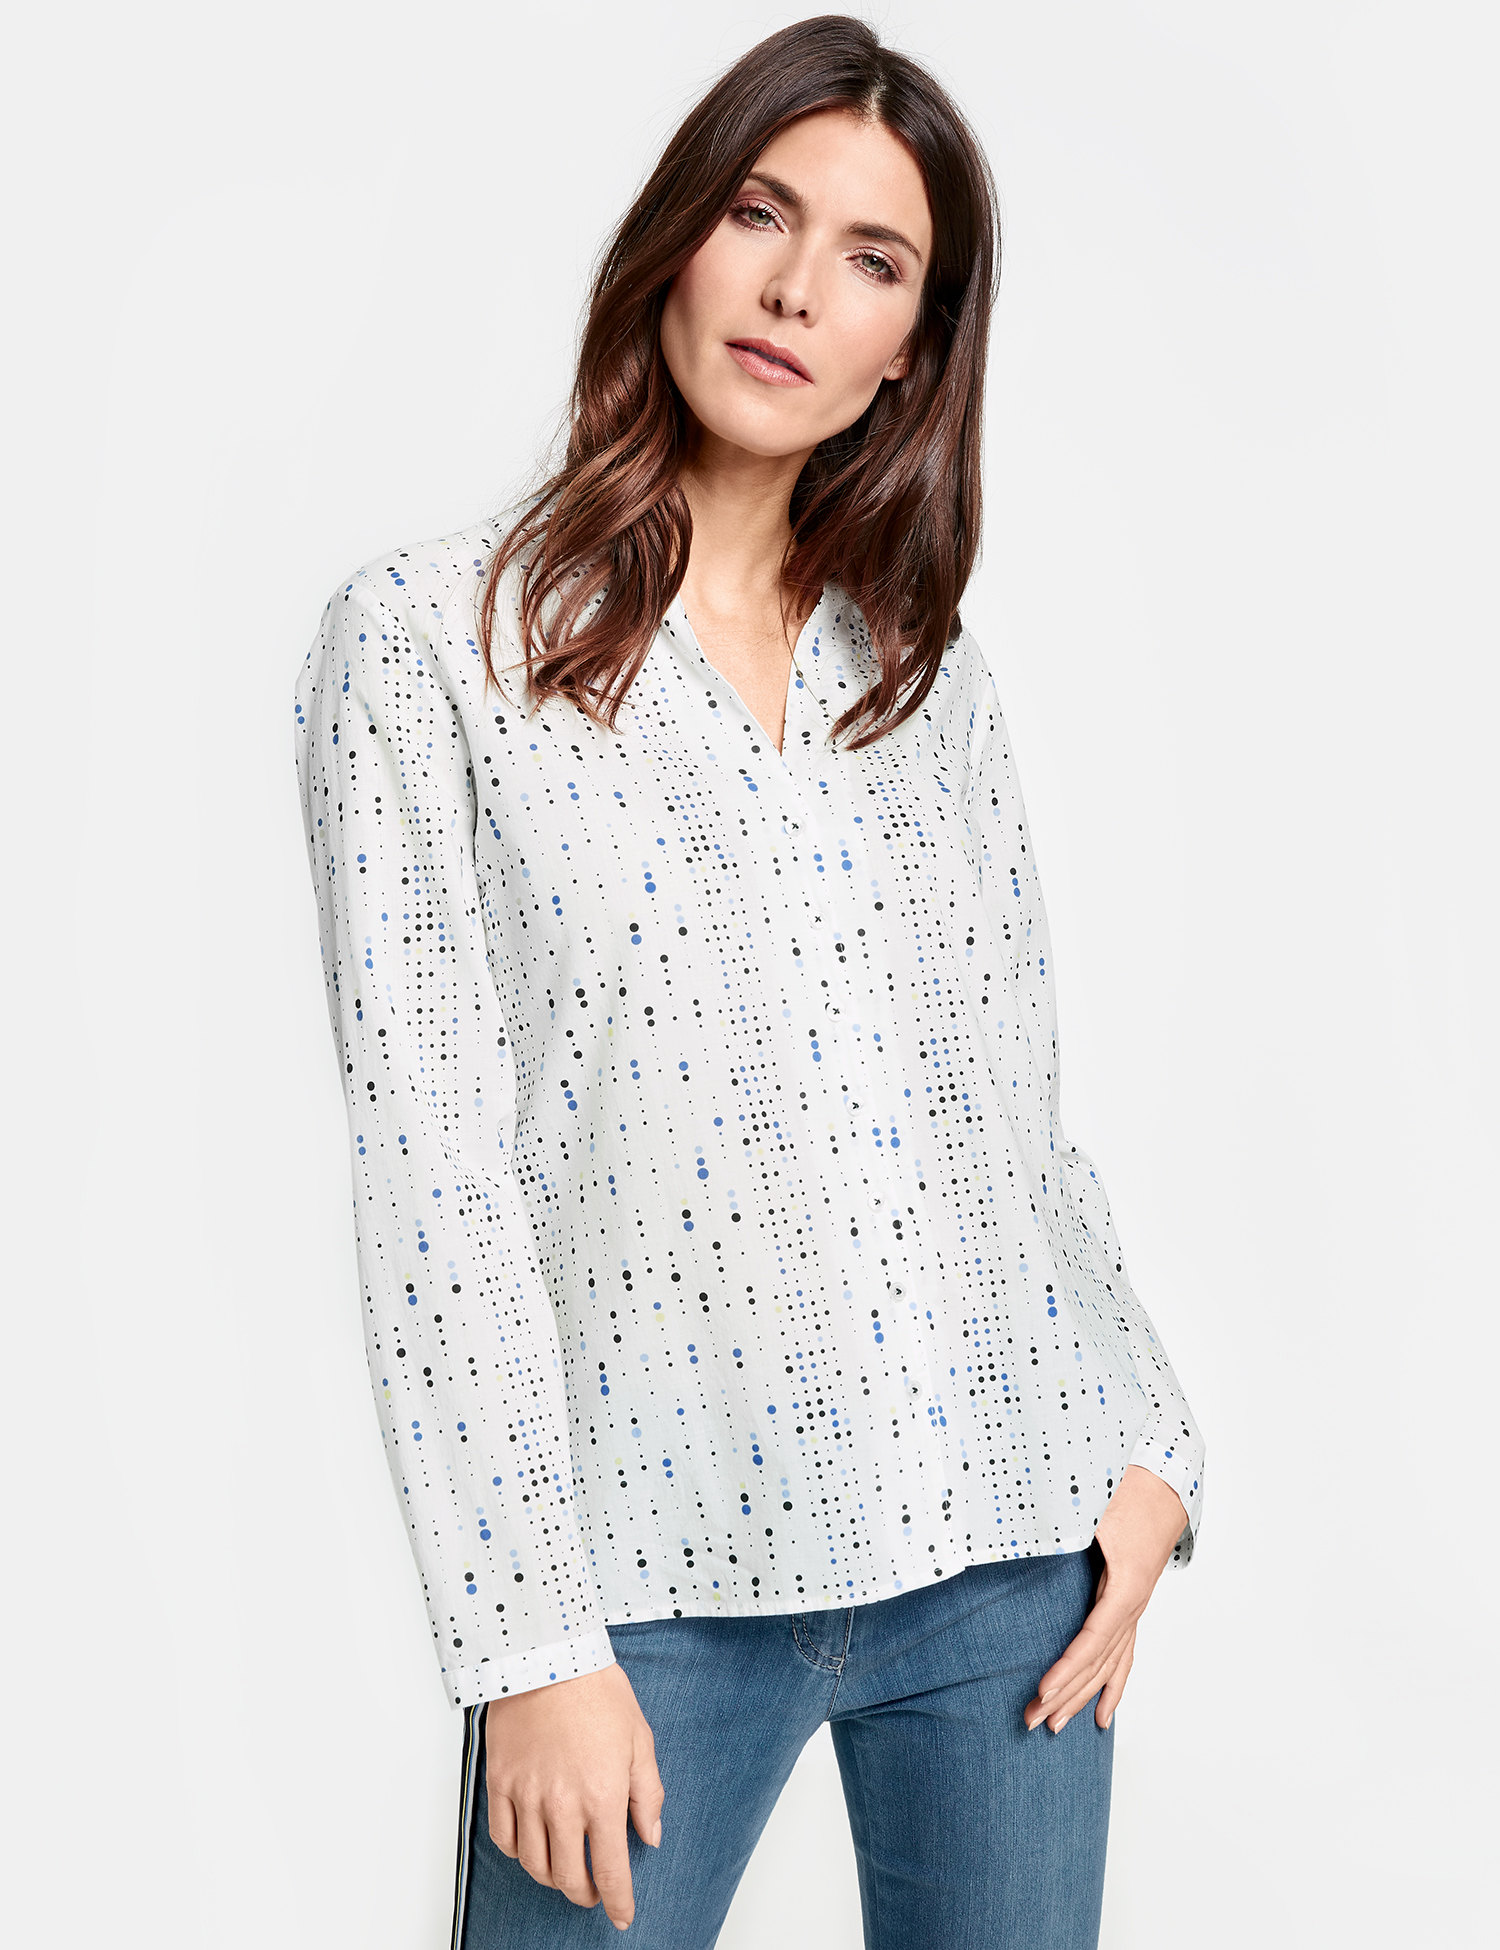 GERRY WEBER Bluse 1/1 Arm Bluse mit Allovermuster